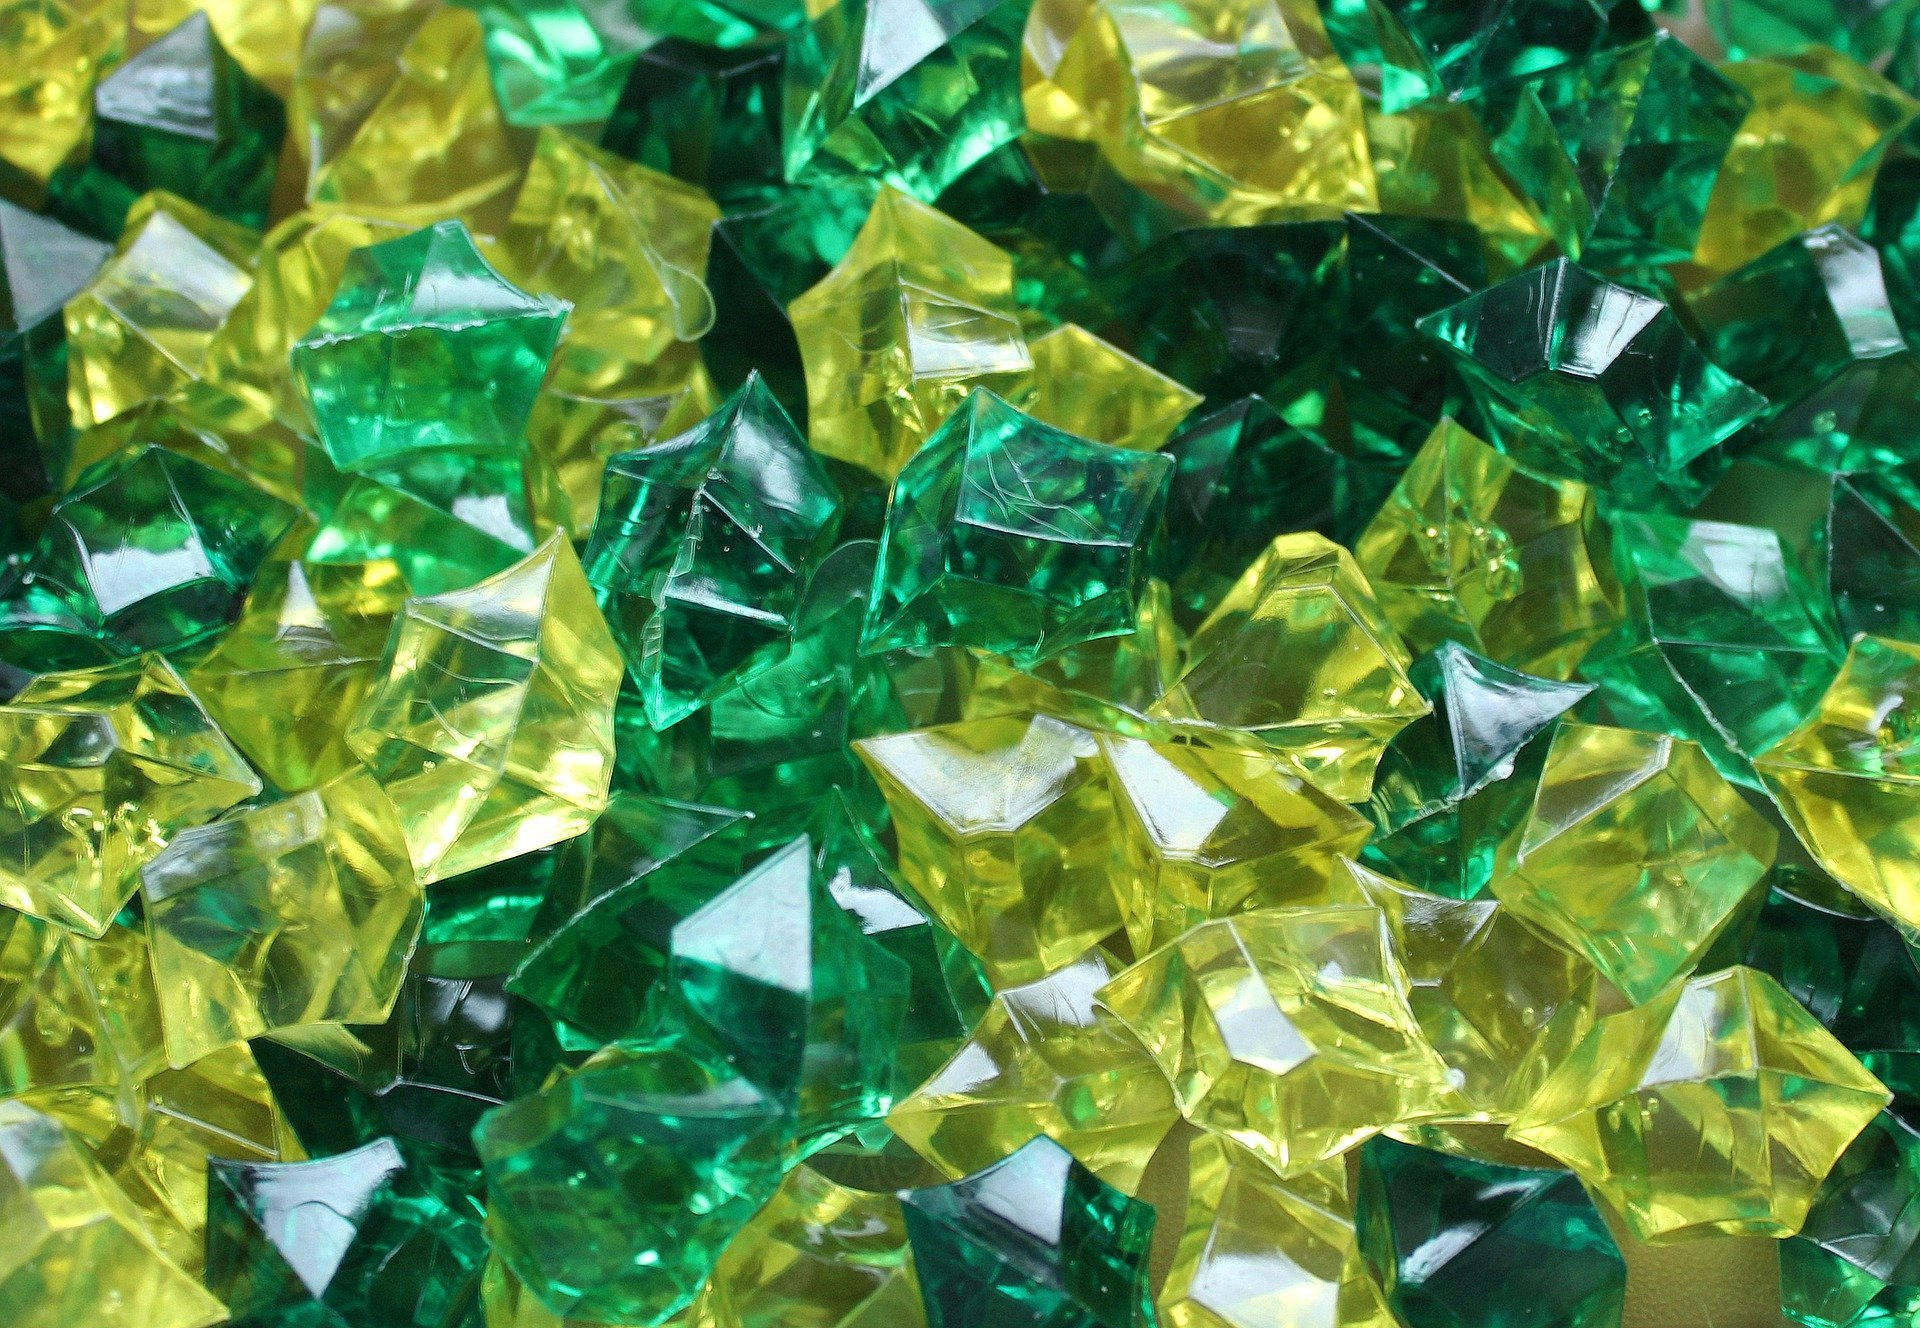 The benefits of green crystals